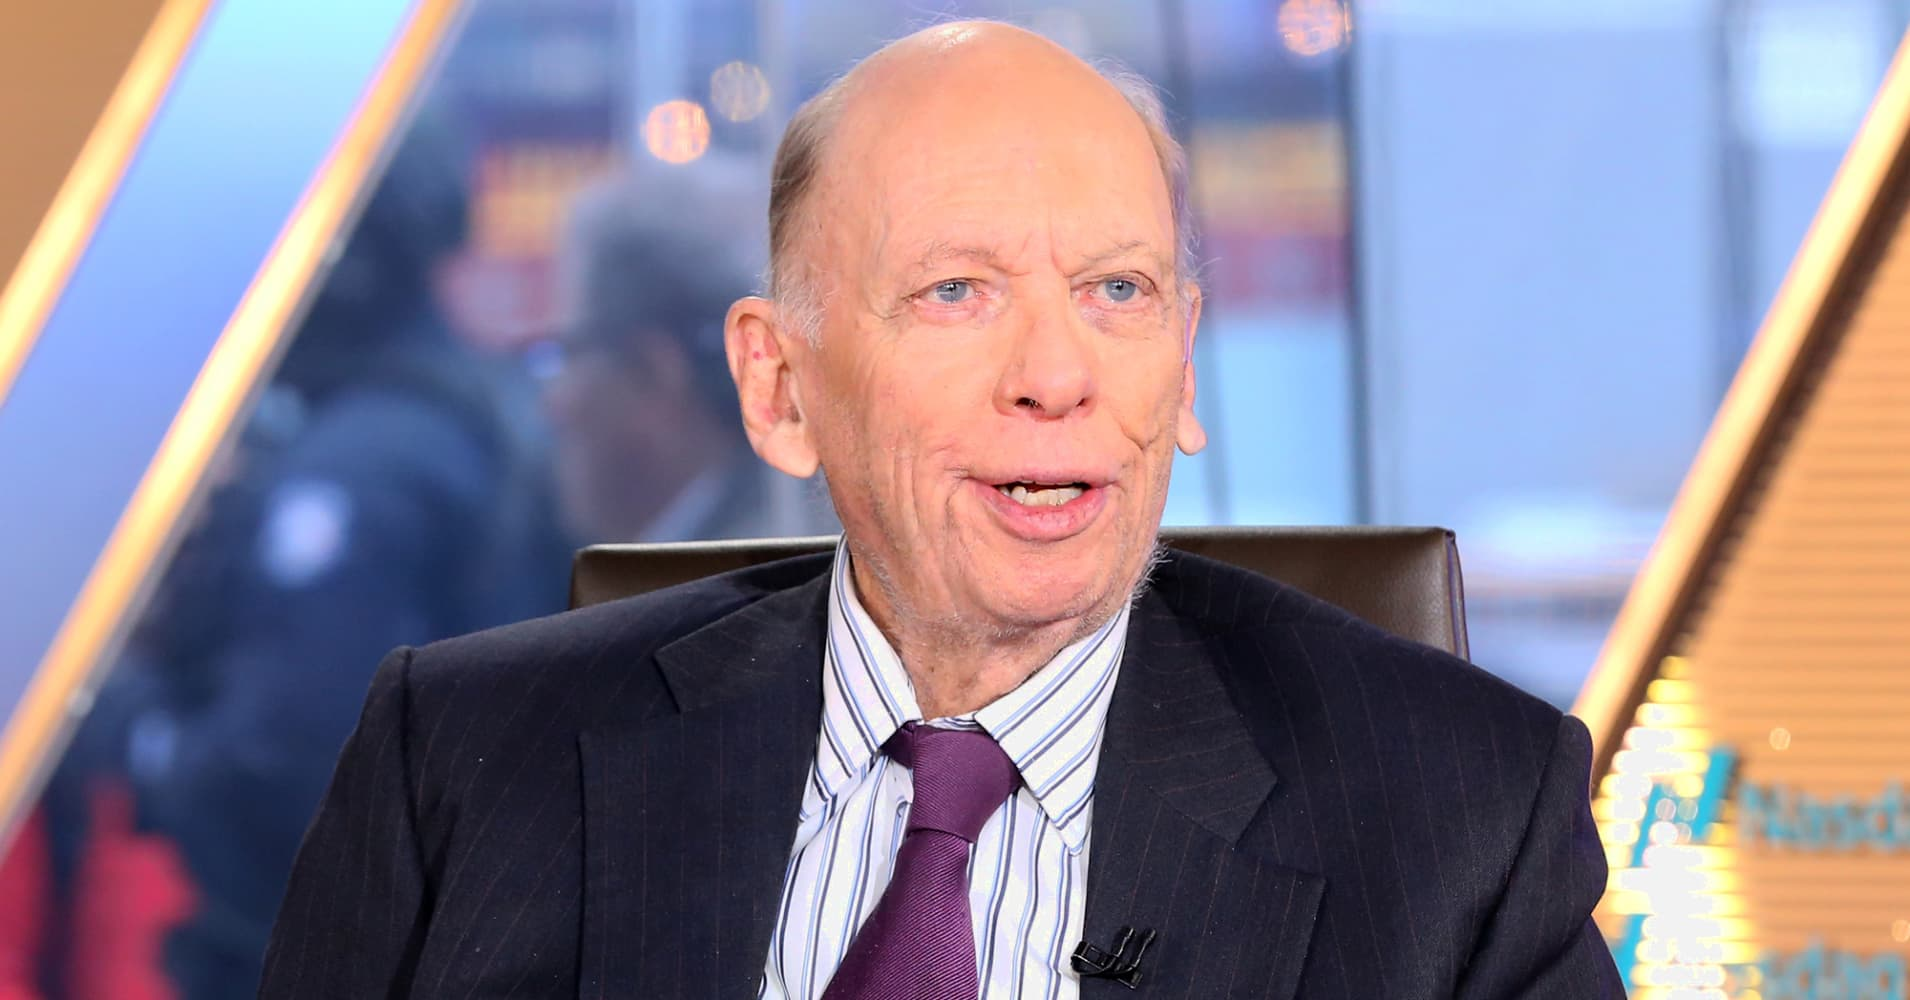 Wall Street's Byron Wien: Stocks could still test February lows but really rally after November midterms